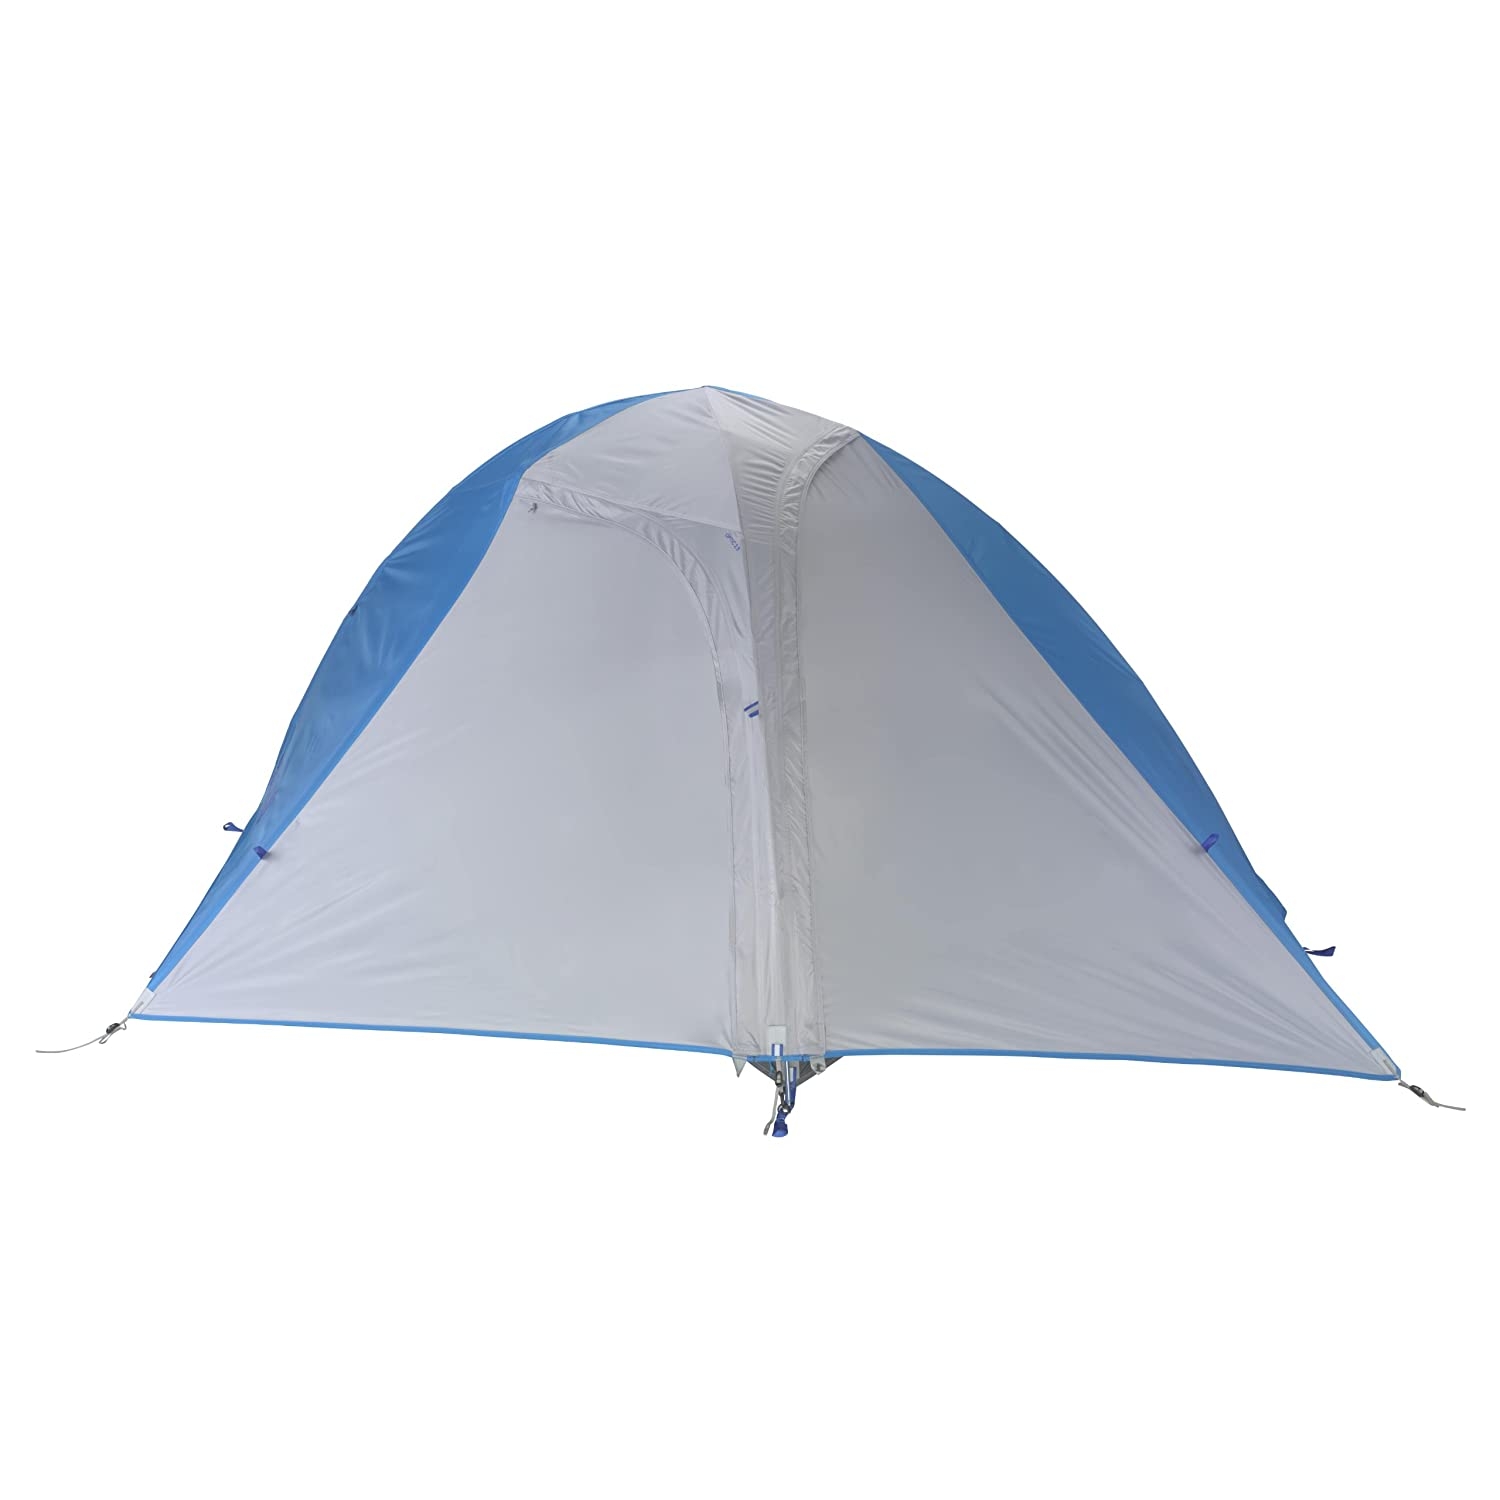 sc 1 st  Amazon.com & Amazon.com : Mountain Hardwear Optic 2.5 Tent : Sports u0026 Outdoors